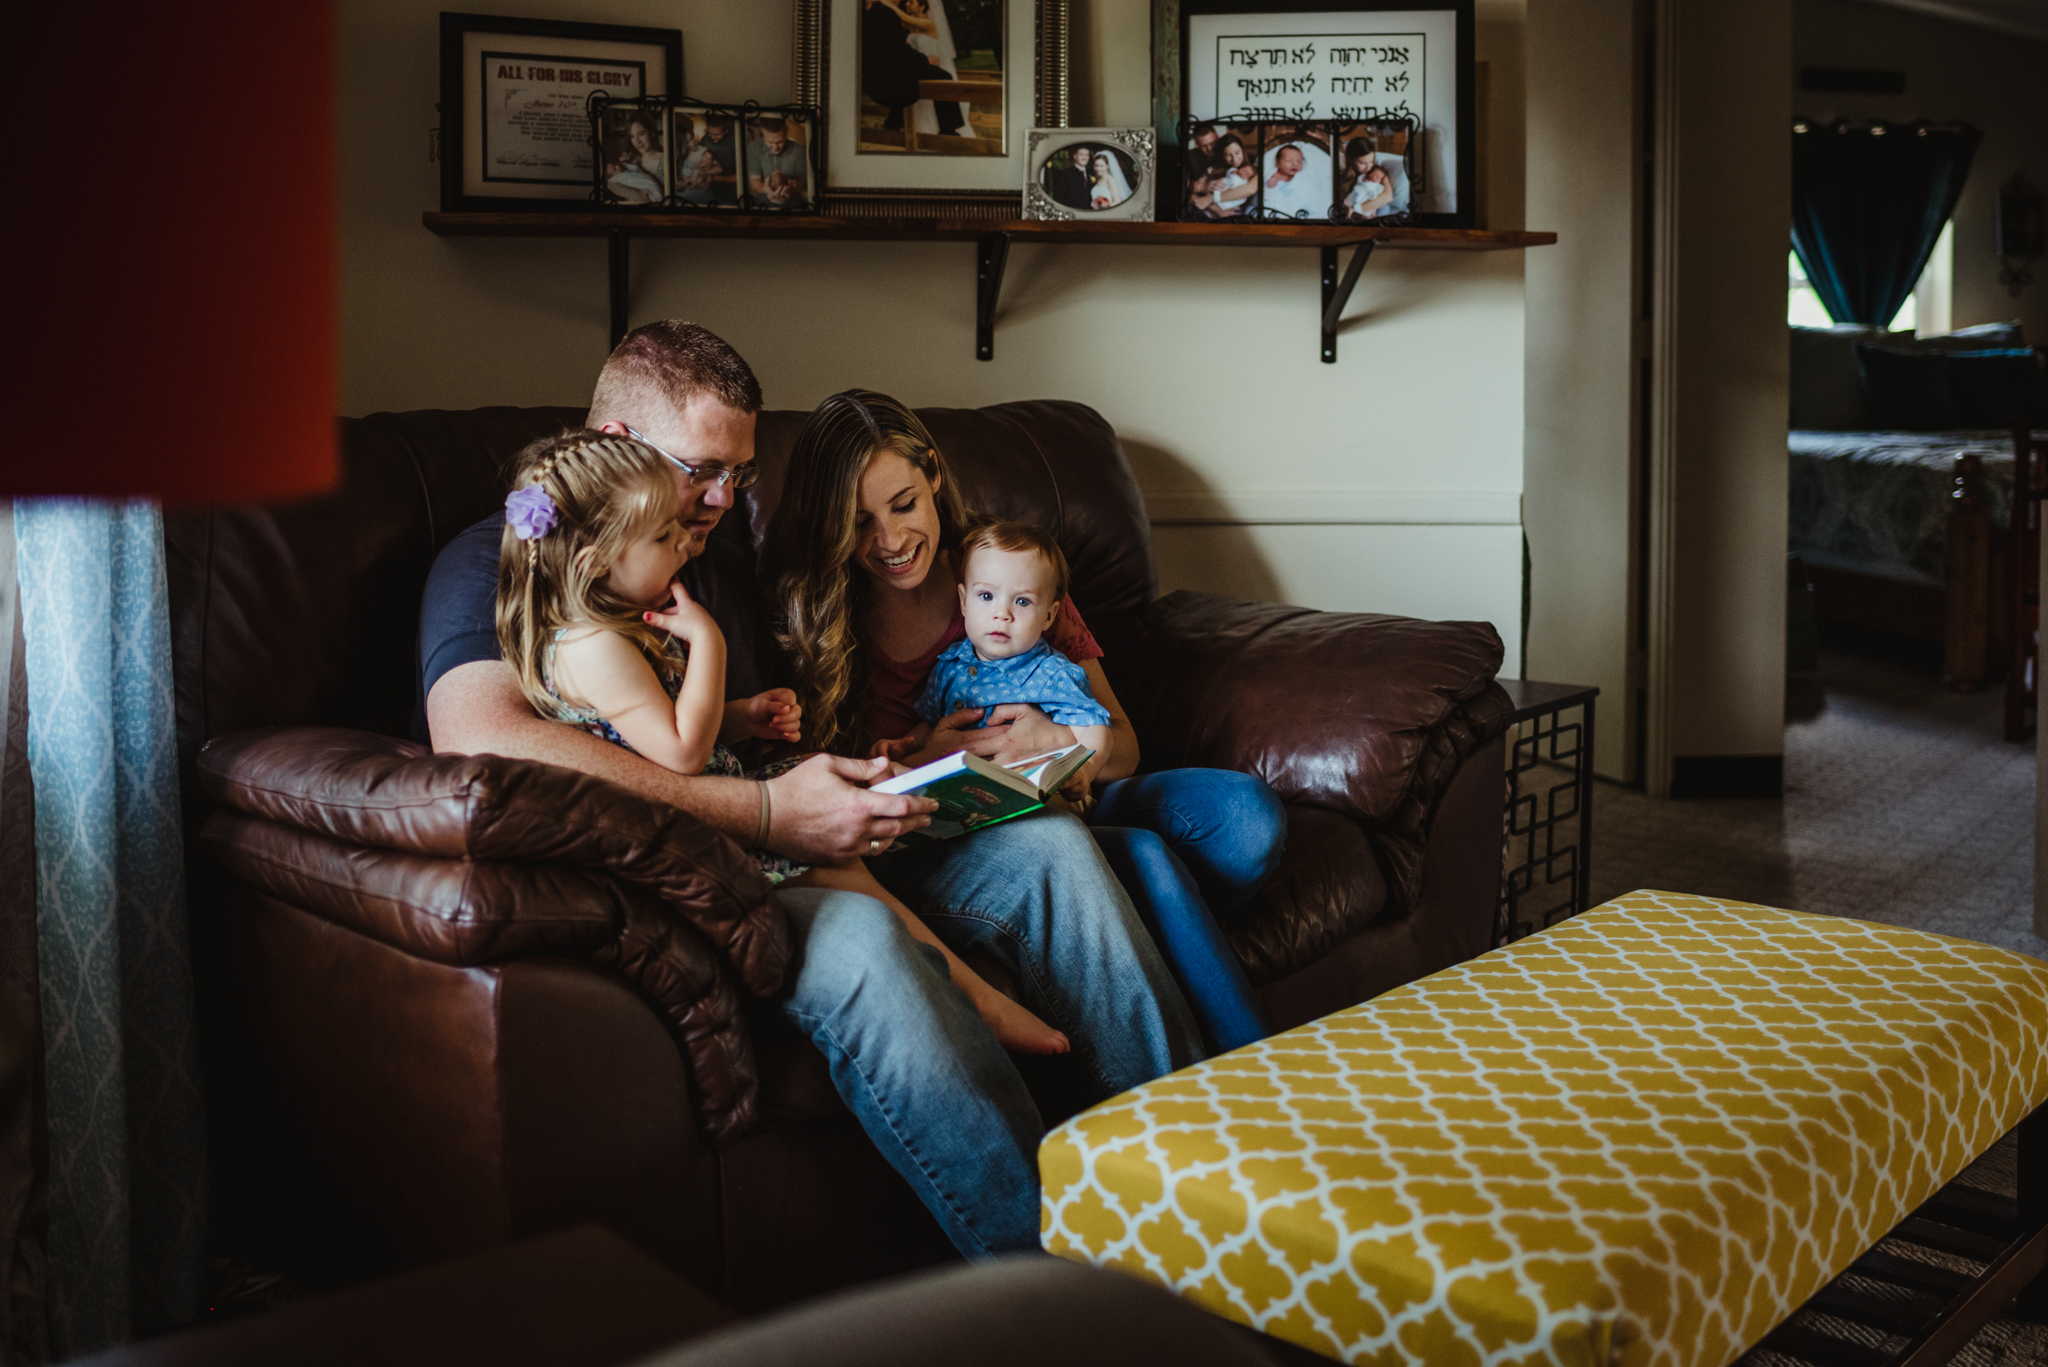 The family has Bible time together on the couch during their lifestyle session at home in Wake Forest with Rose Trail Images.